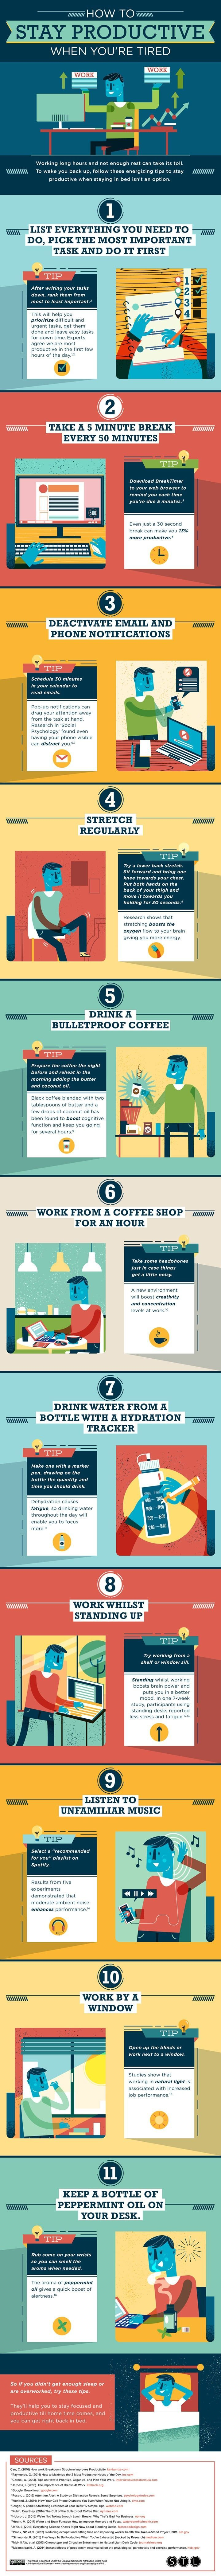 Productivity tips for small business owners, entrepreneurs, and bloggers! Wondering how to be productive all day? If you're on a deadline, the 11 tips on this infographic will help you stay productive when you're dragging!